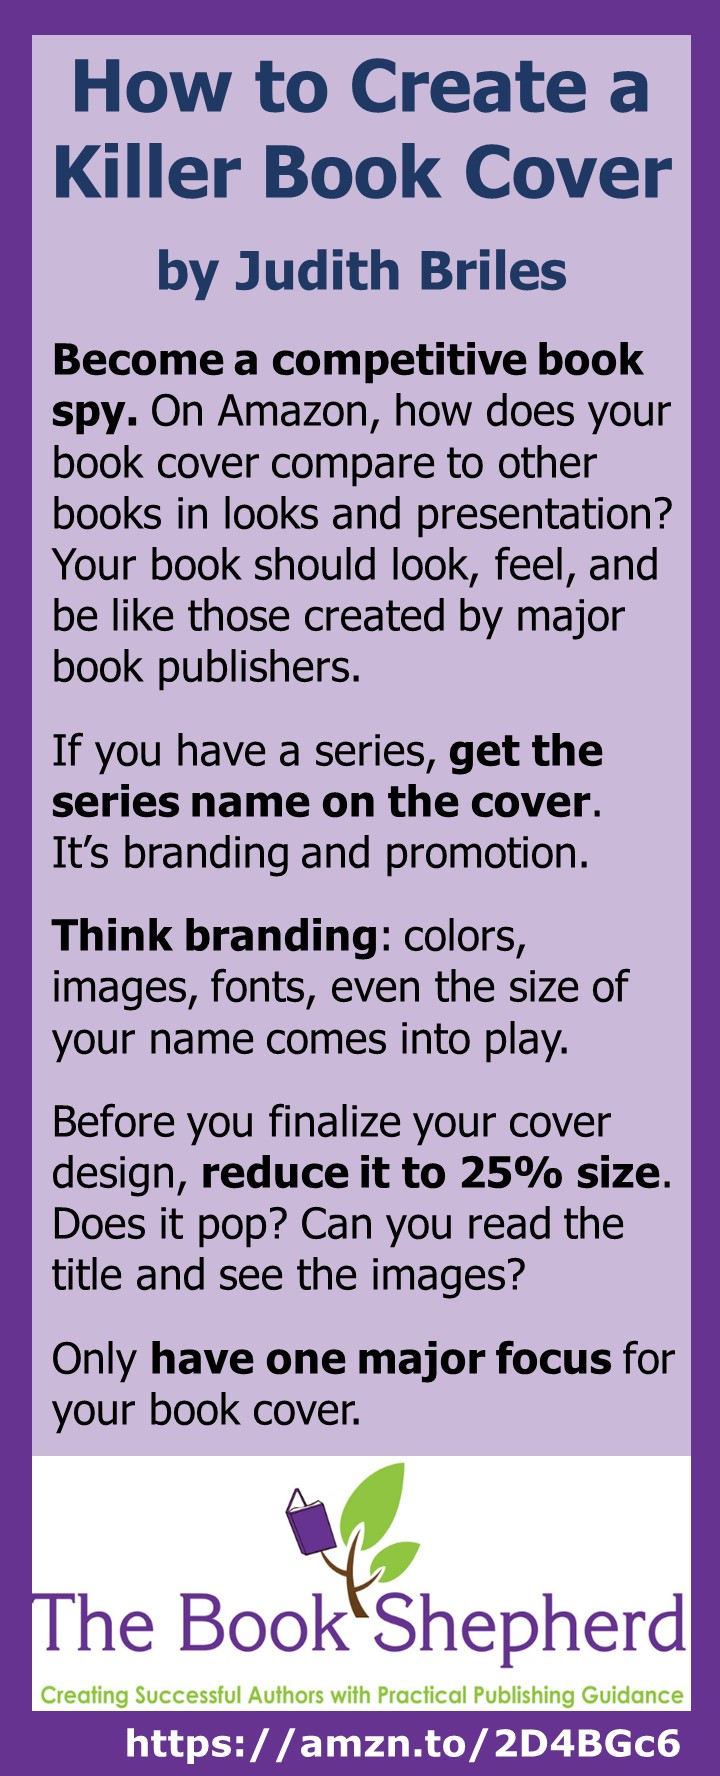 Judith Briles on How to Create Killer Book Covers. Remember: Killer book covers sell books, lots more books!